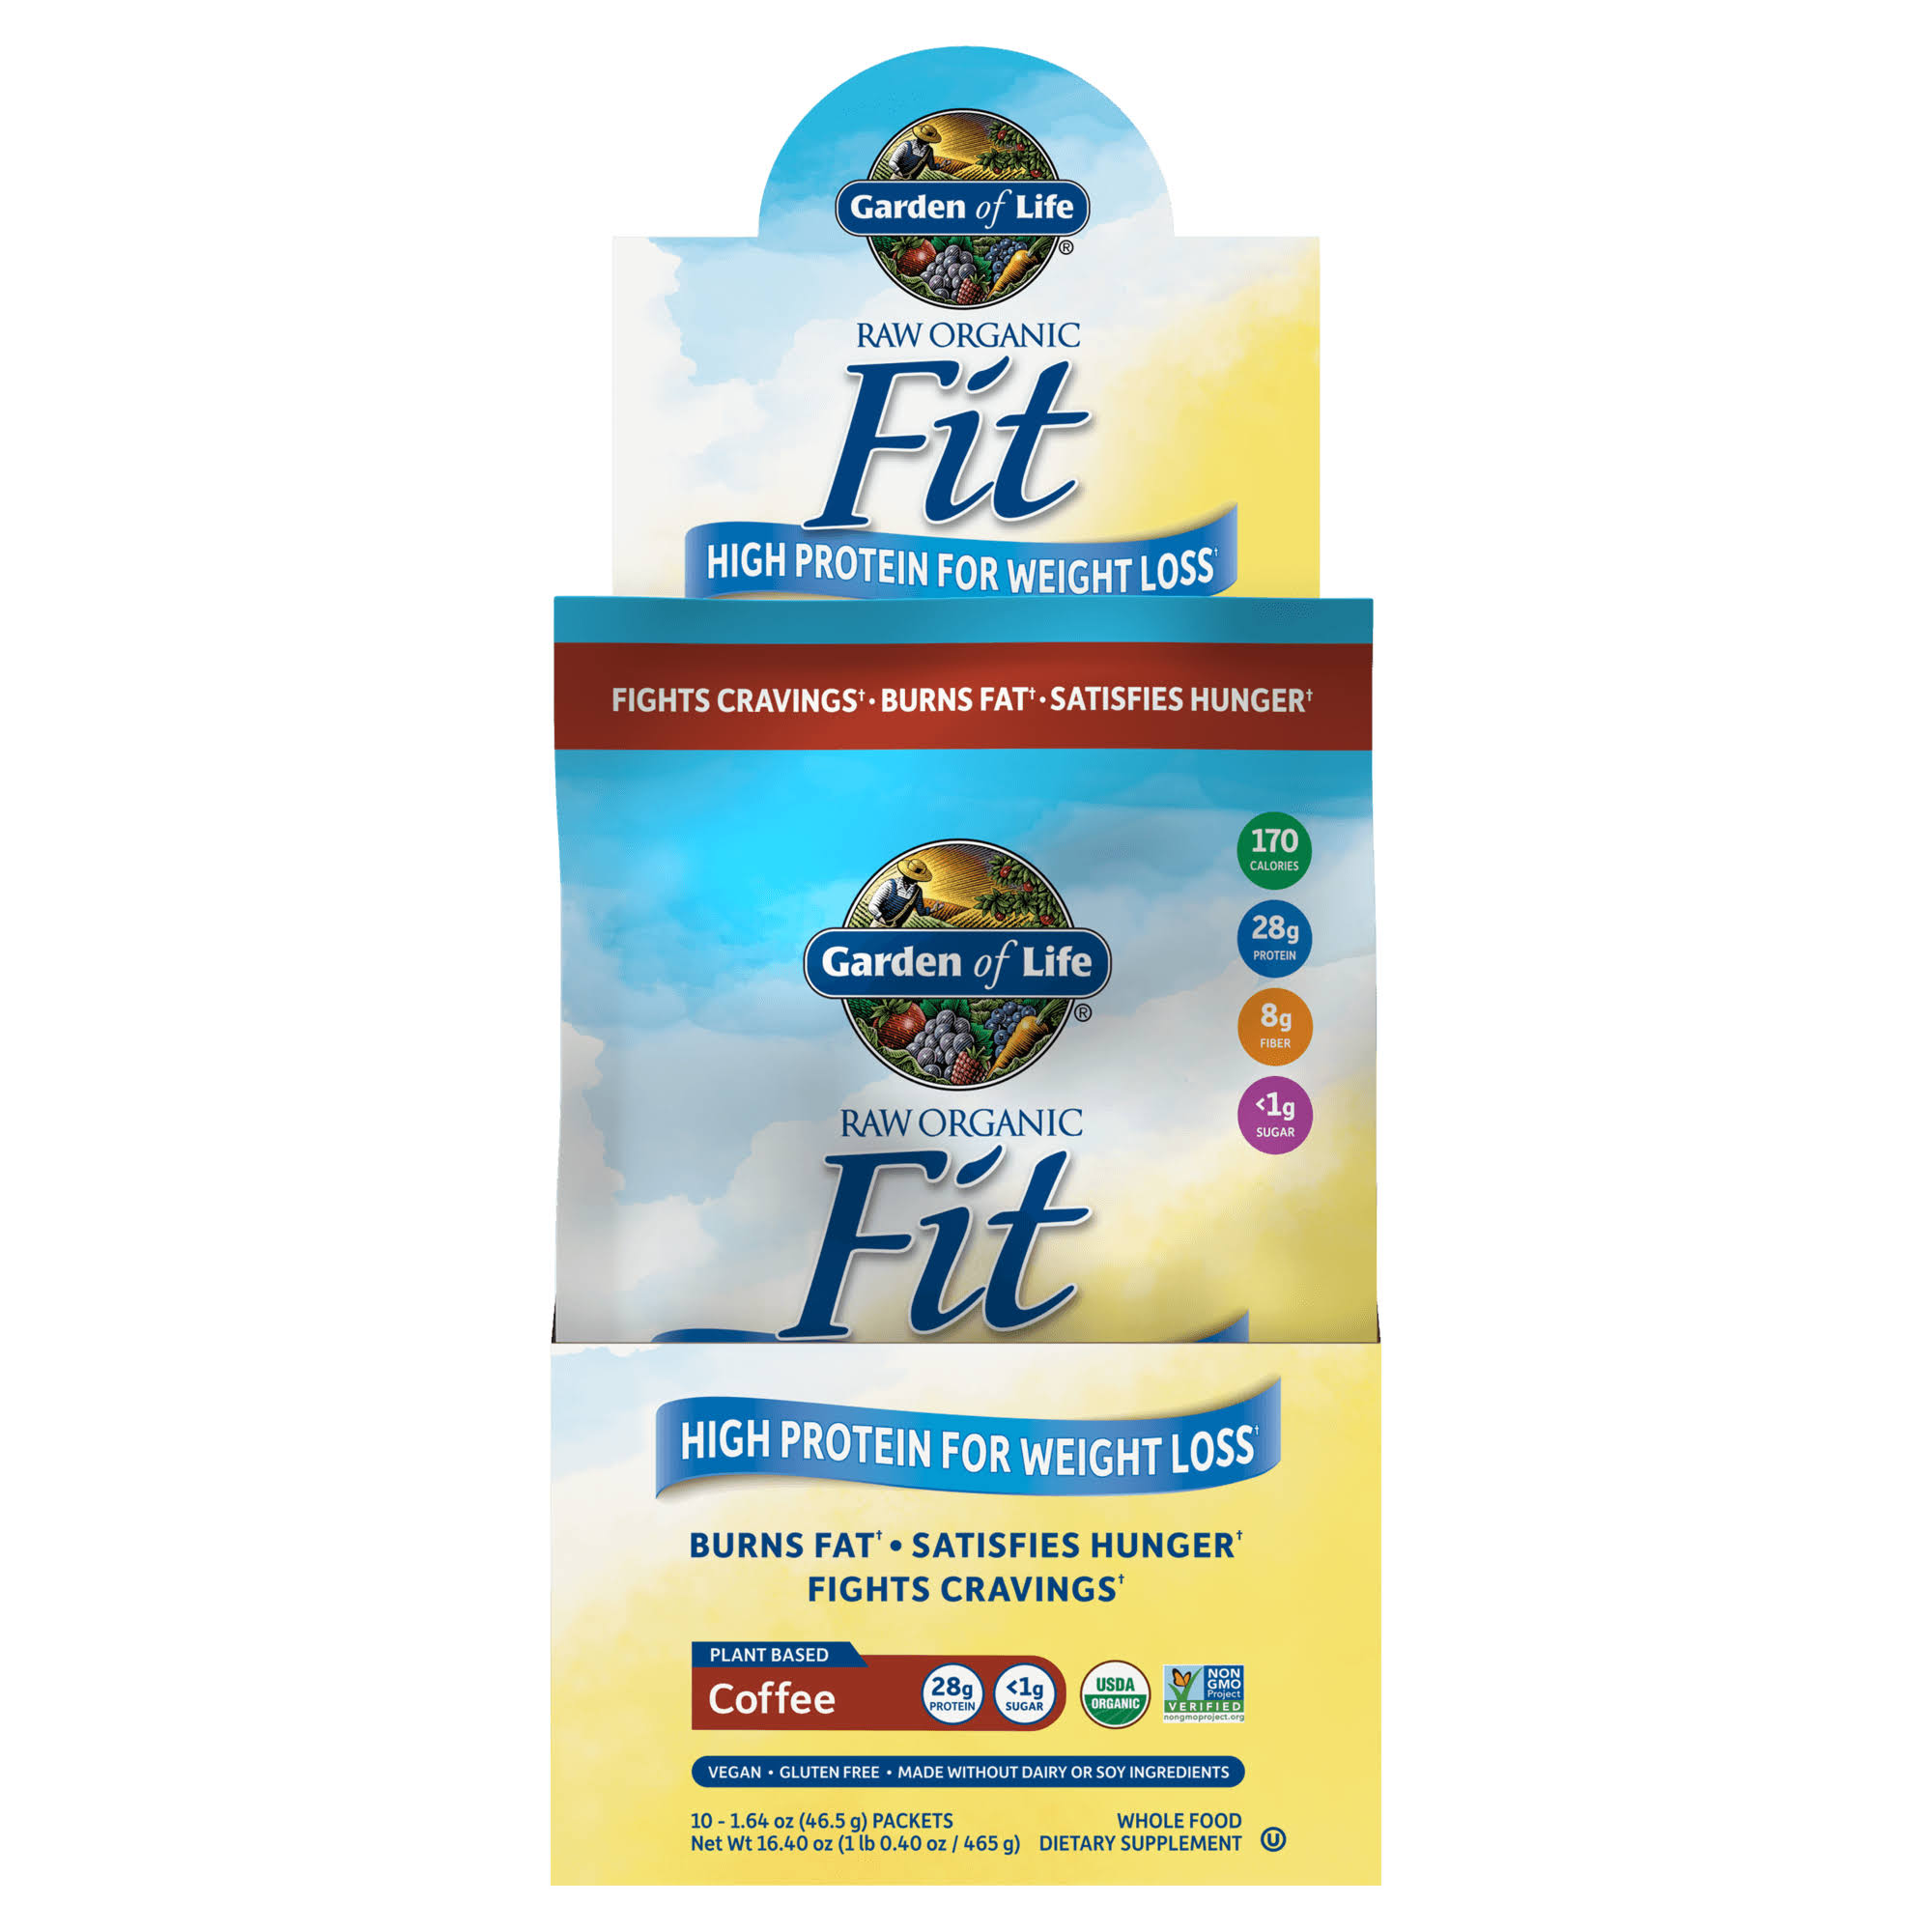 Garden Of Life Raw Fit Protein Dietary Supplement Powder - Coffee, 450g, 10 Packets